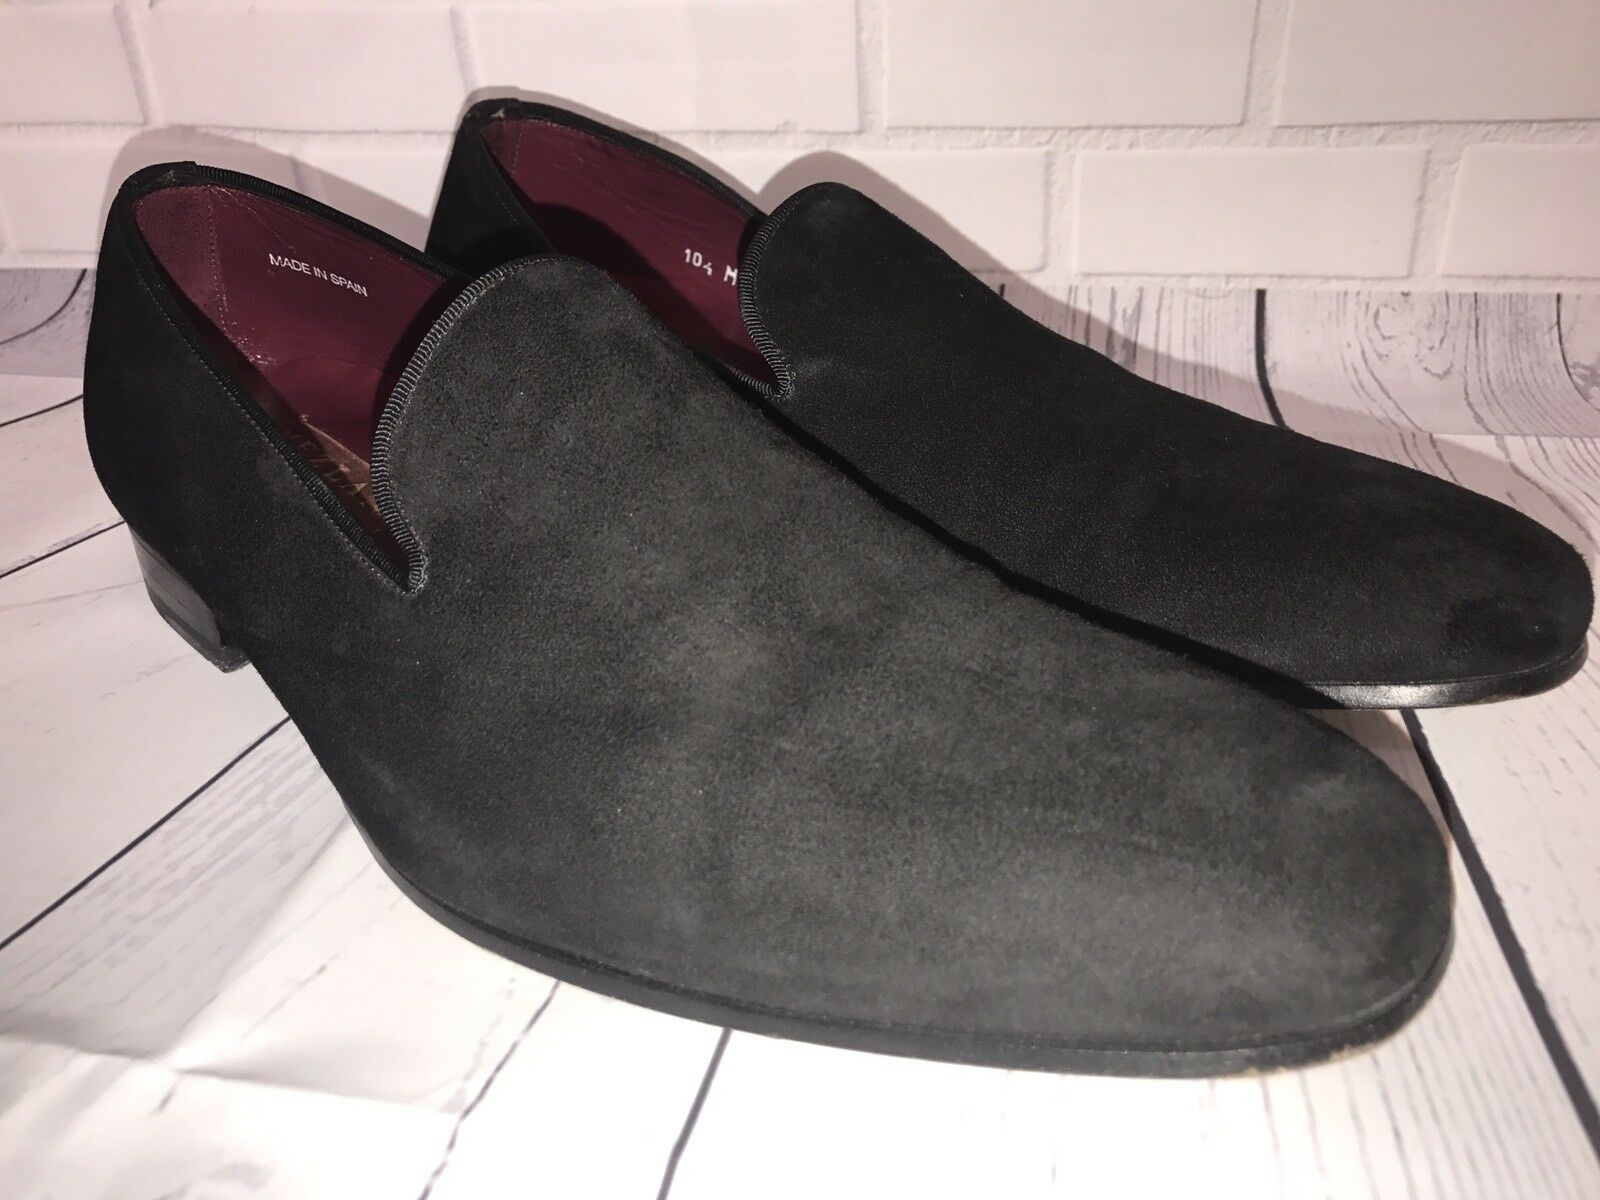 Mezlan Black Suede Tuxedo Loafers Driving shoes Men's 10.5 Made In Spain 37921